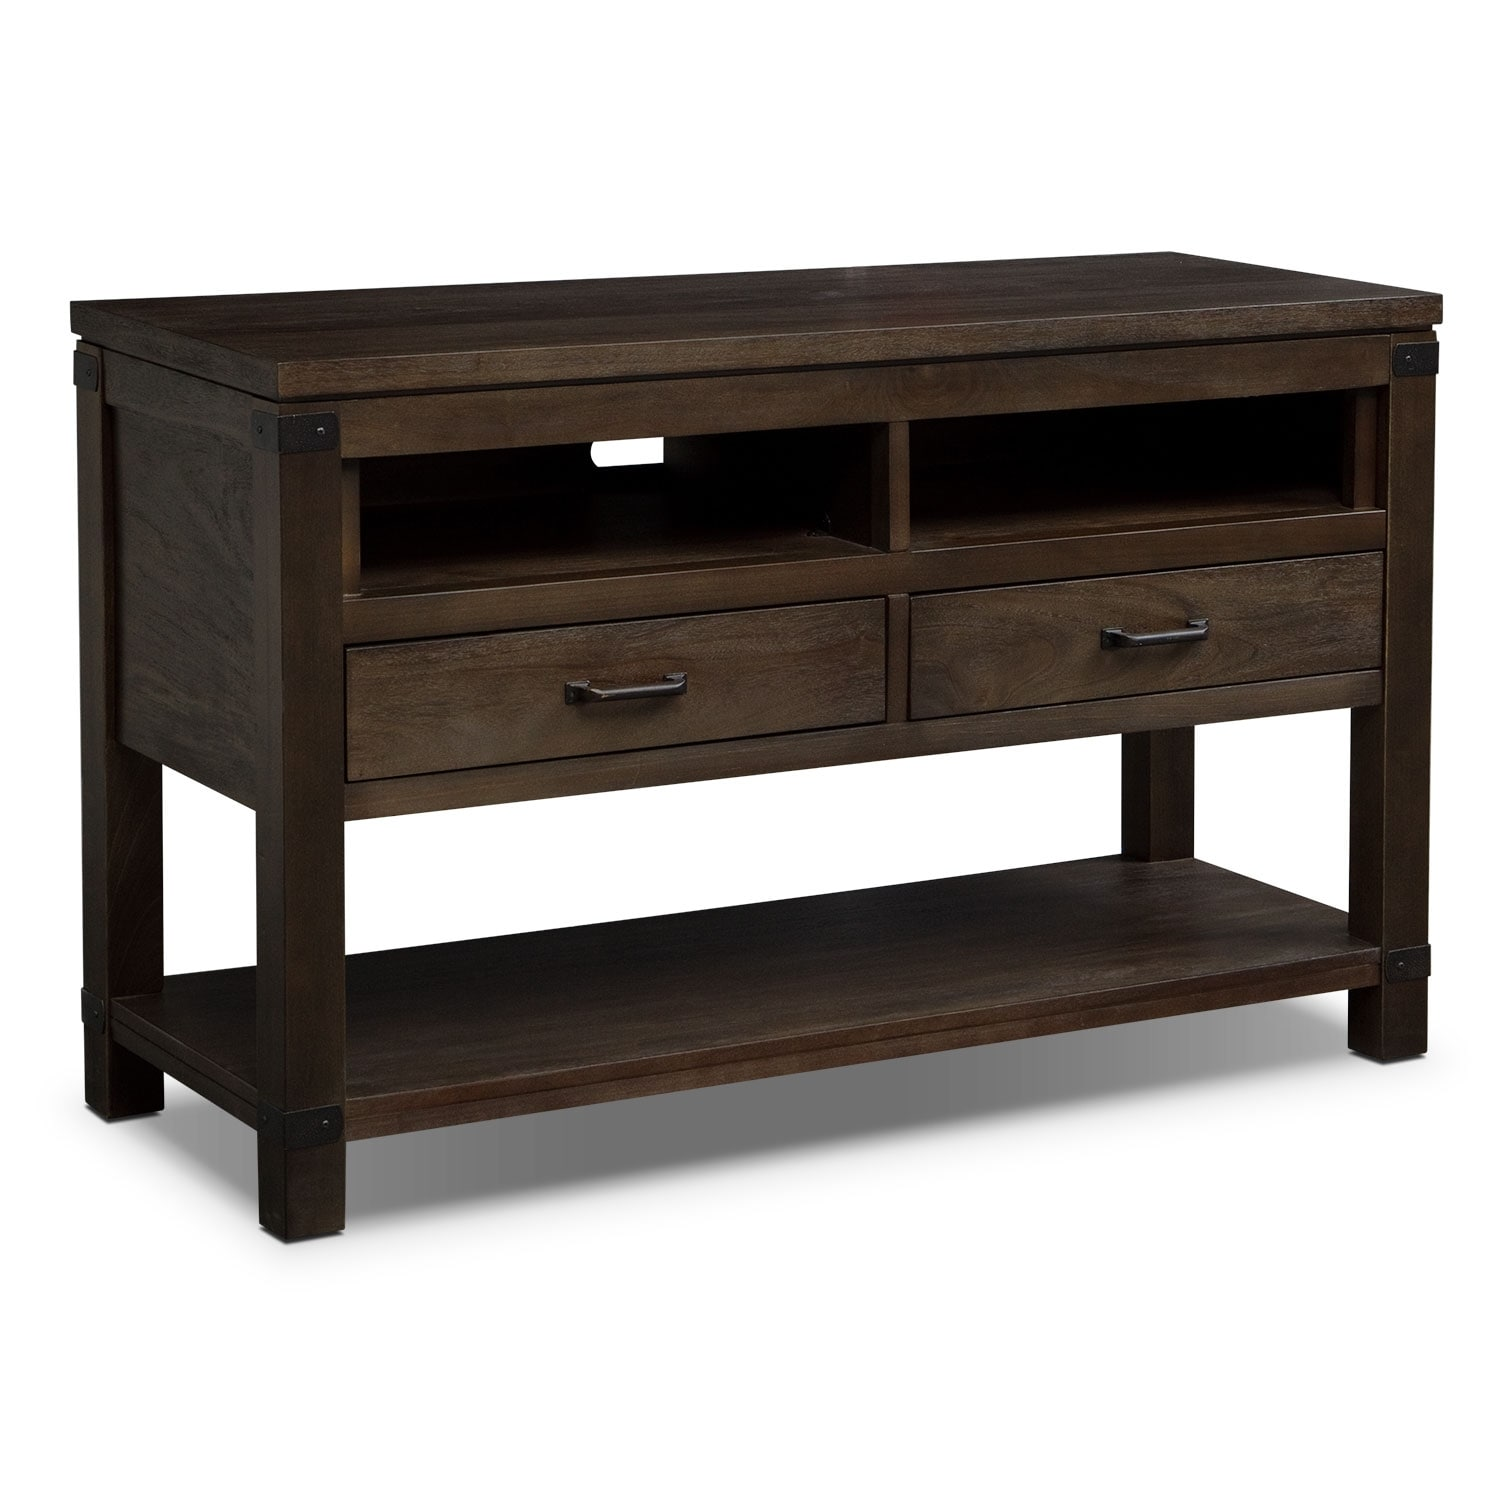 Camryn Sofa Table